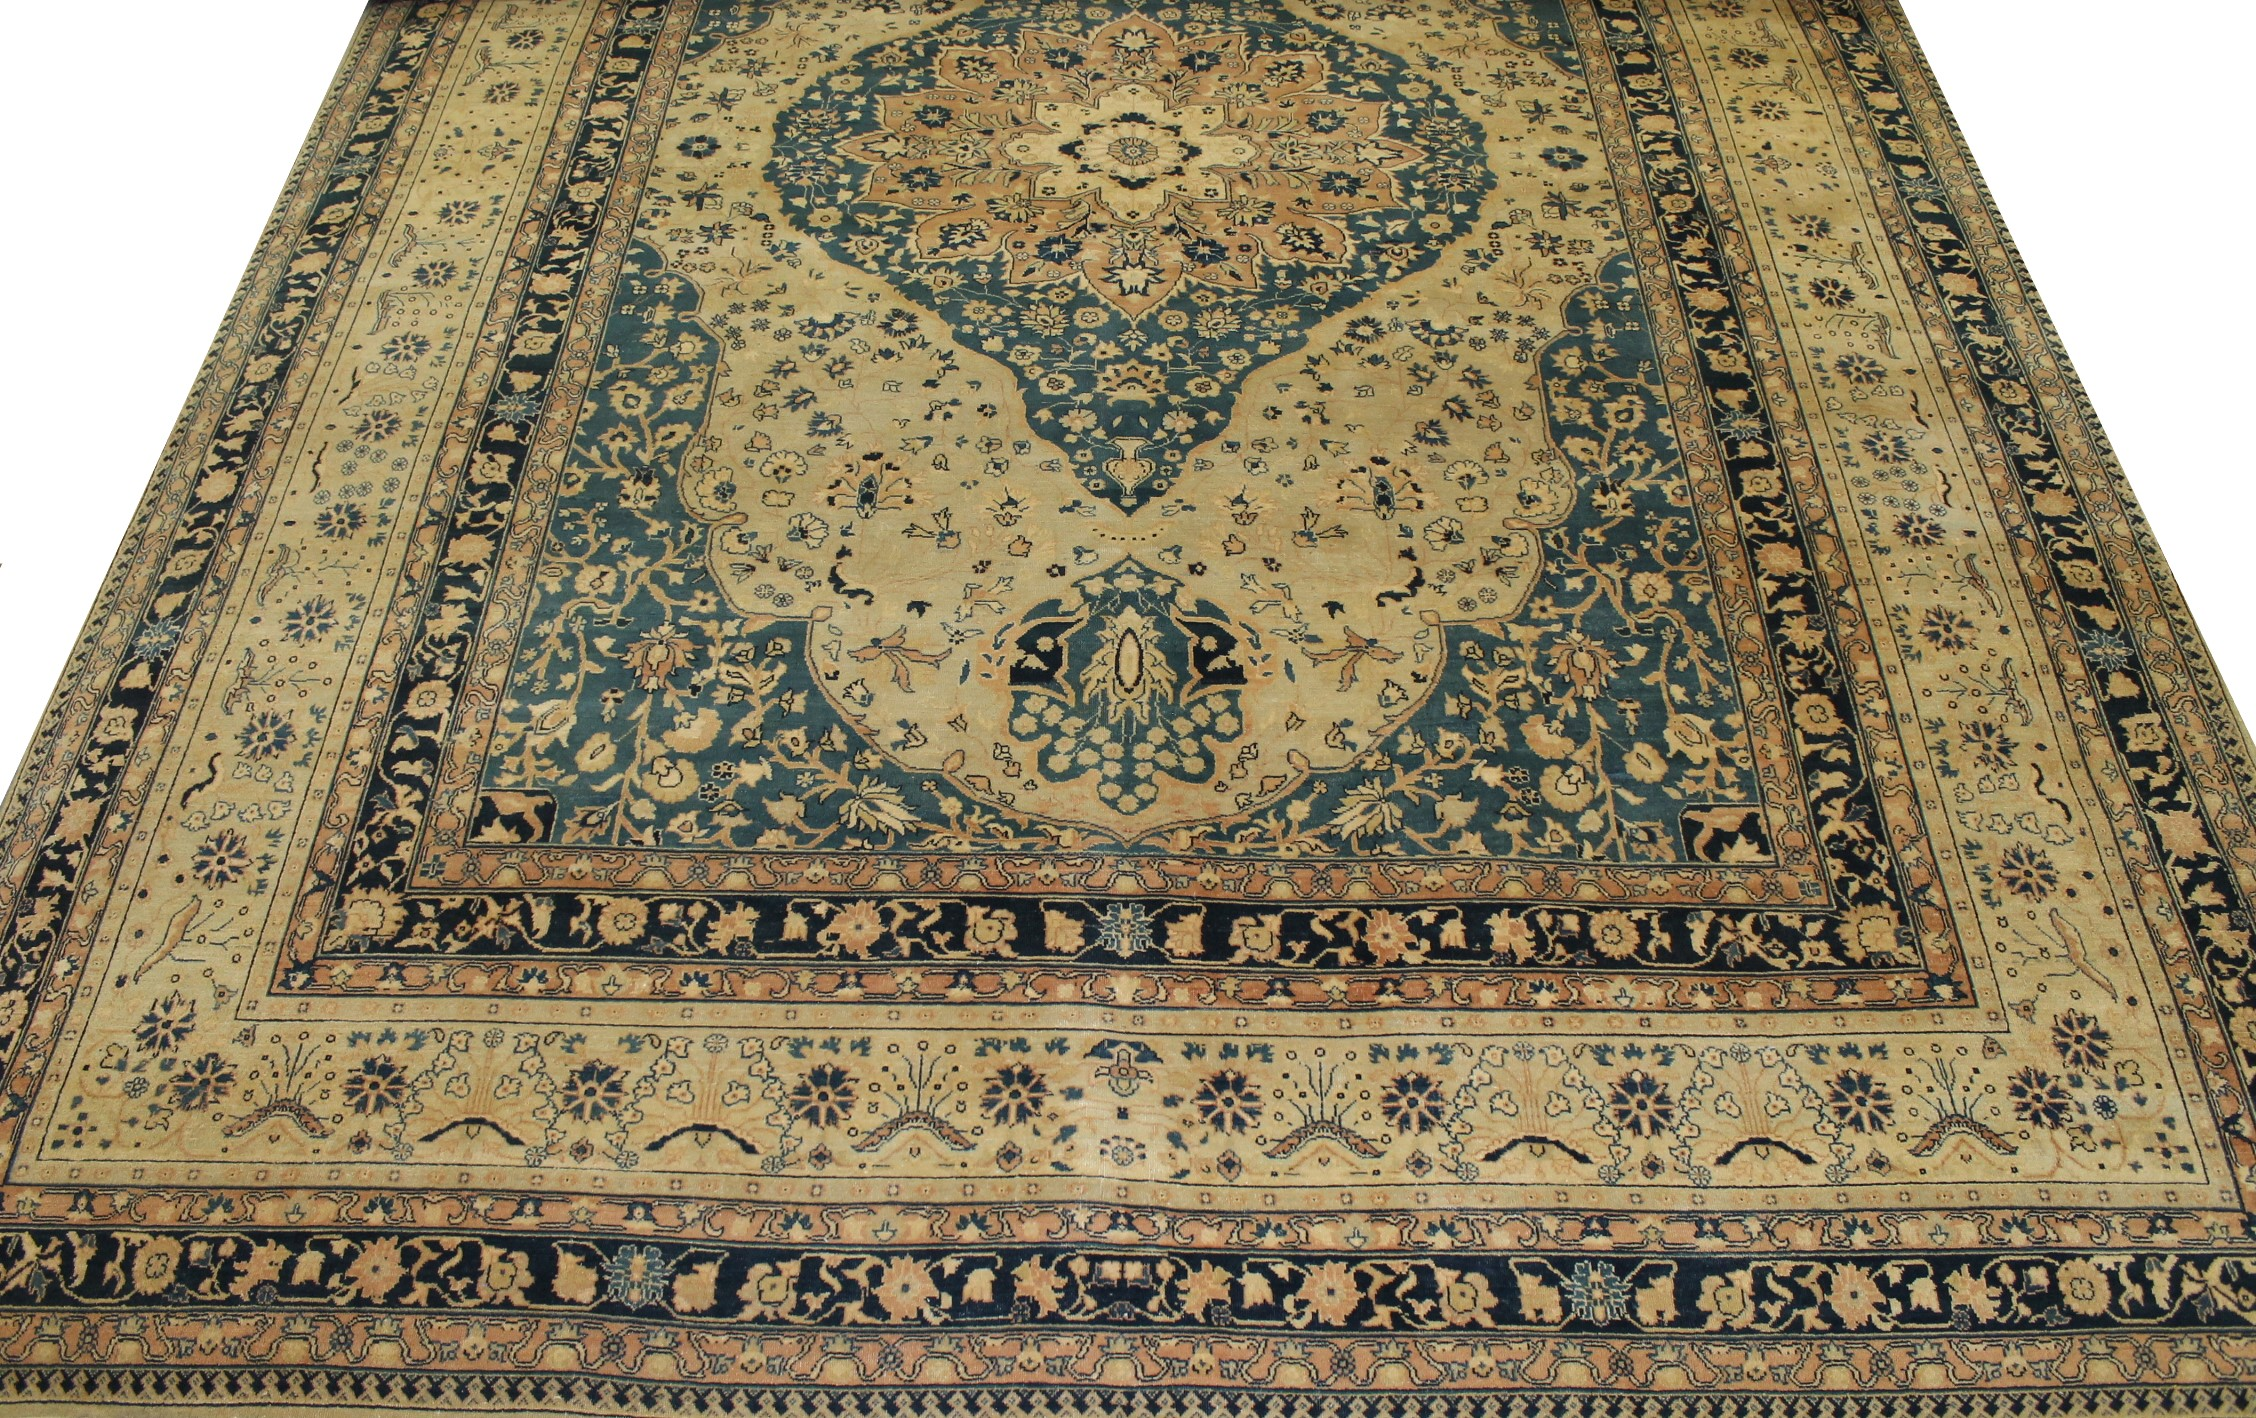 10x14 Aryana & Antique Revivals Hand Knotted Wool Area Rug - MR11540